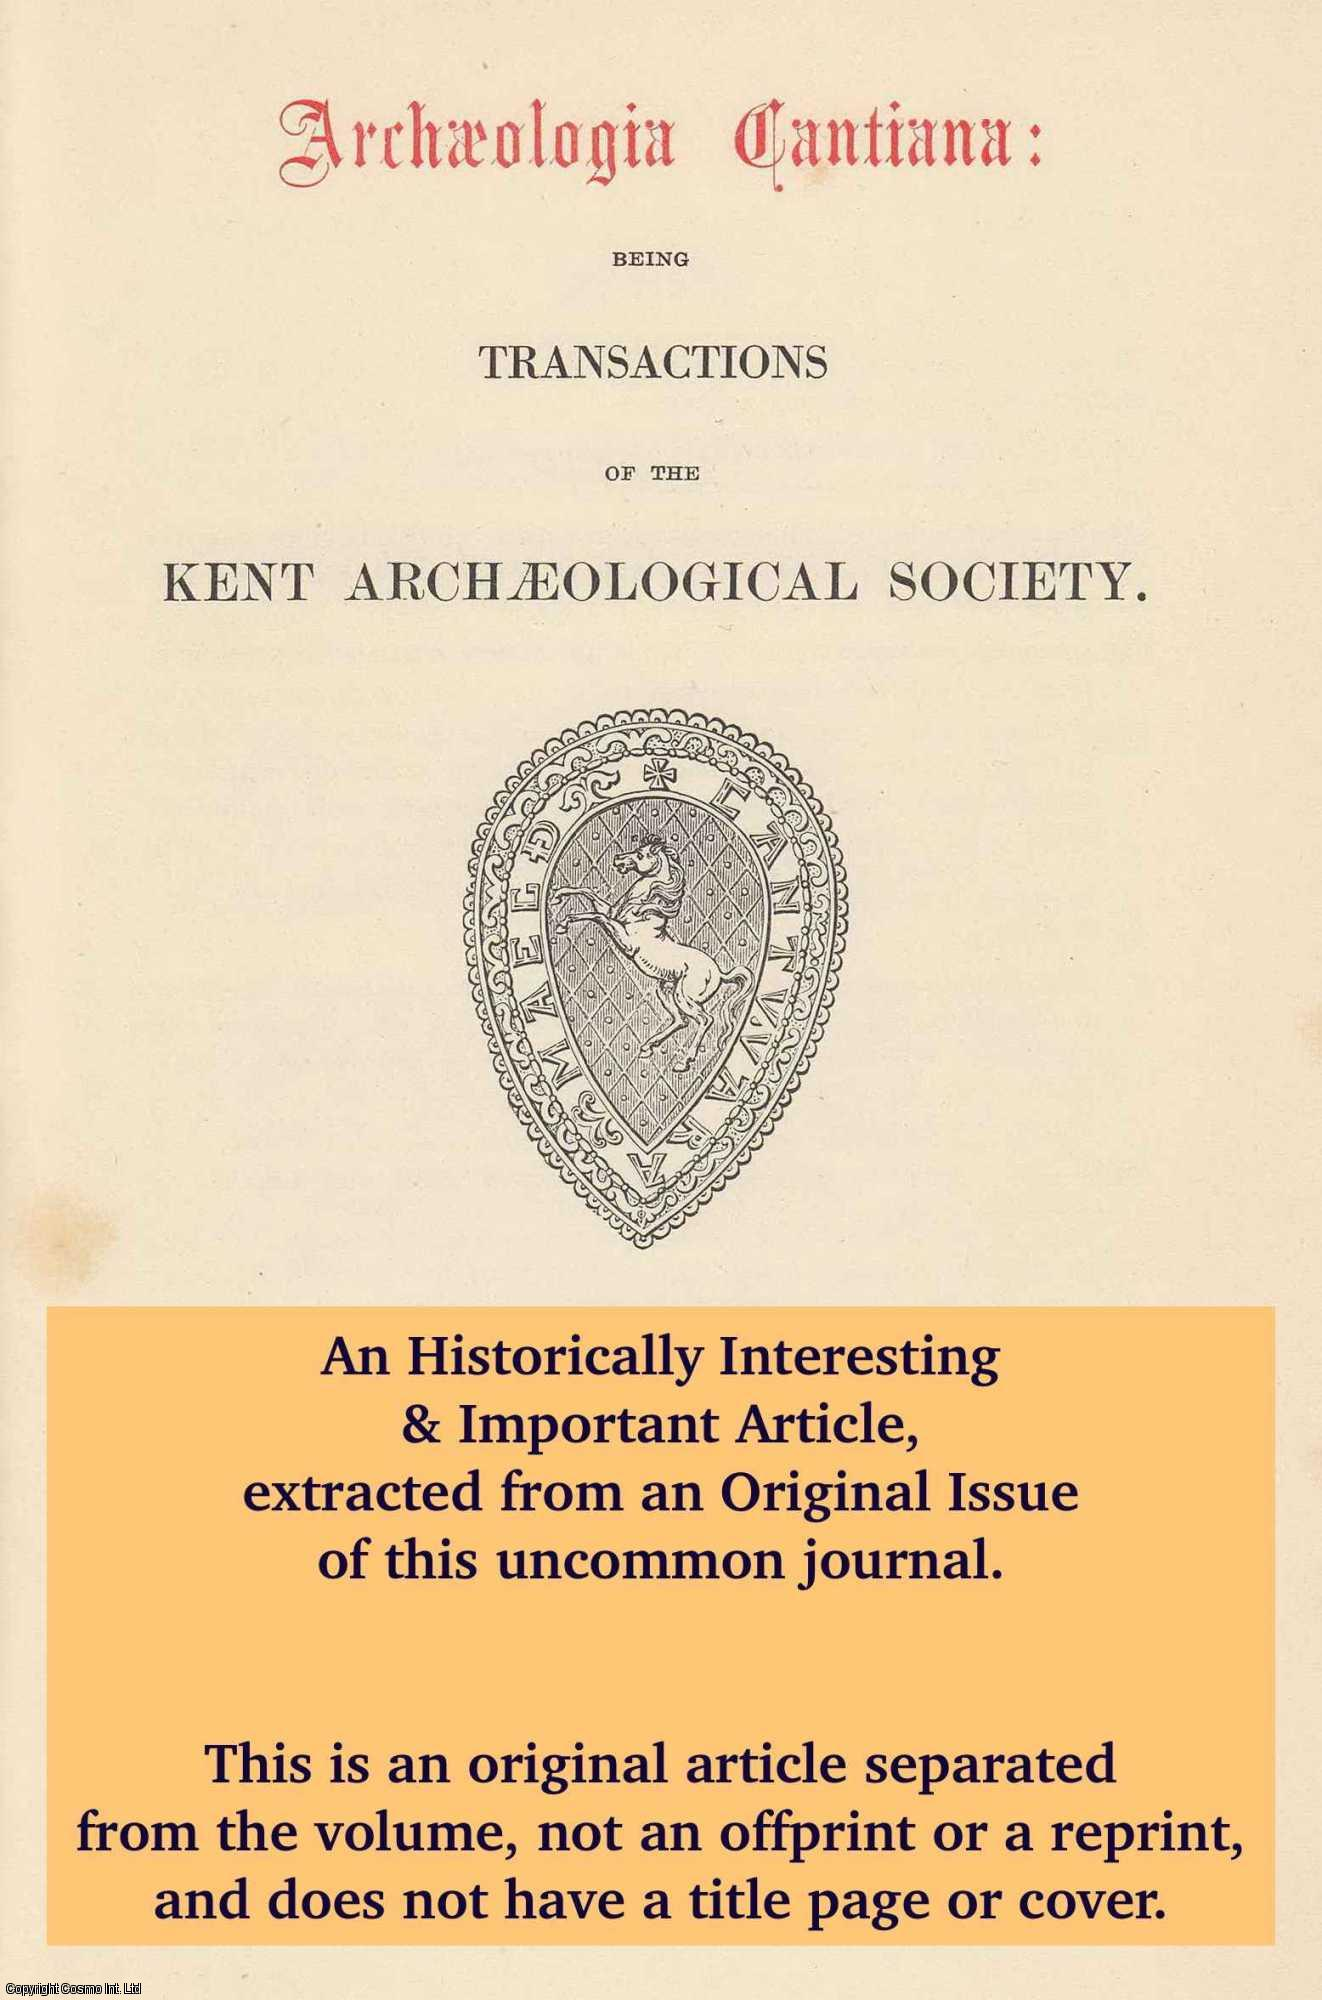 JESSUP, R. F. - Holborough: A Retrospect. An original article from The Archaeologia Cantiana: Being Transactions of The Kent Archaeological Society, 1945.